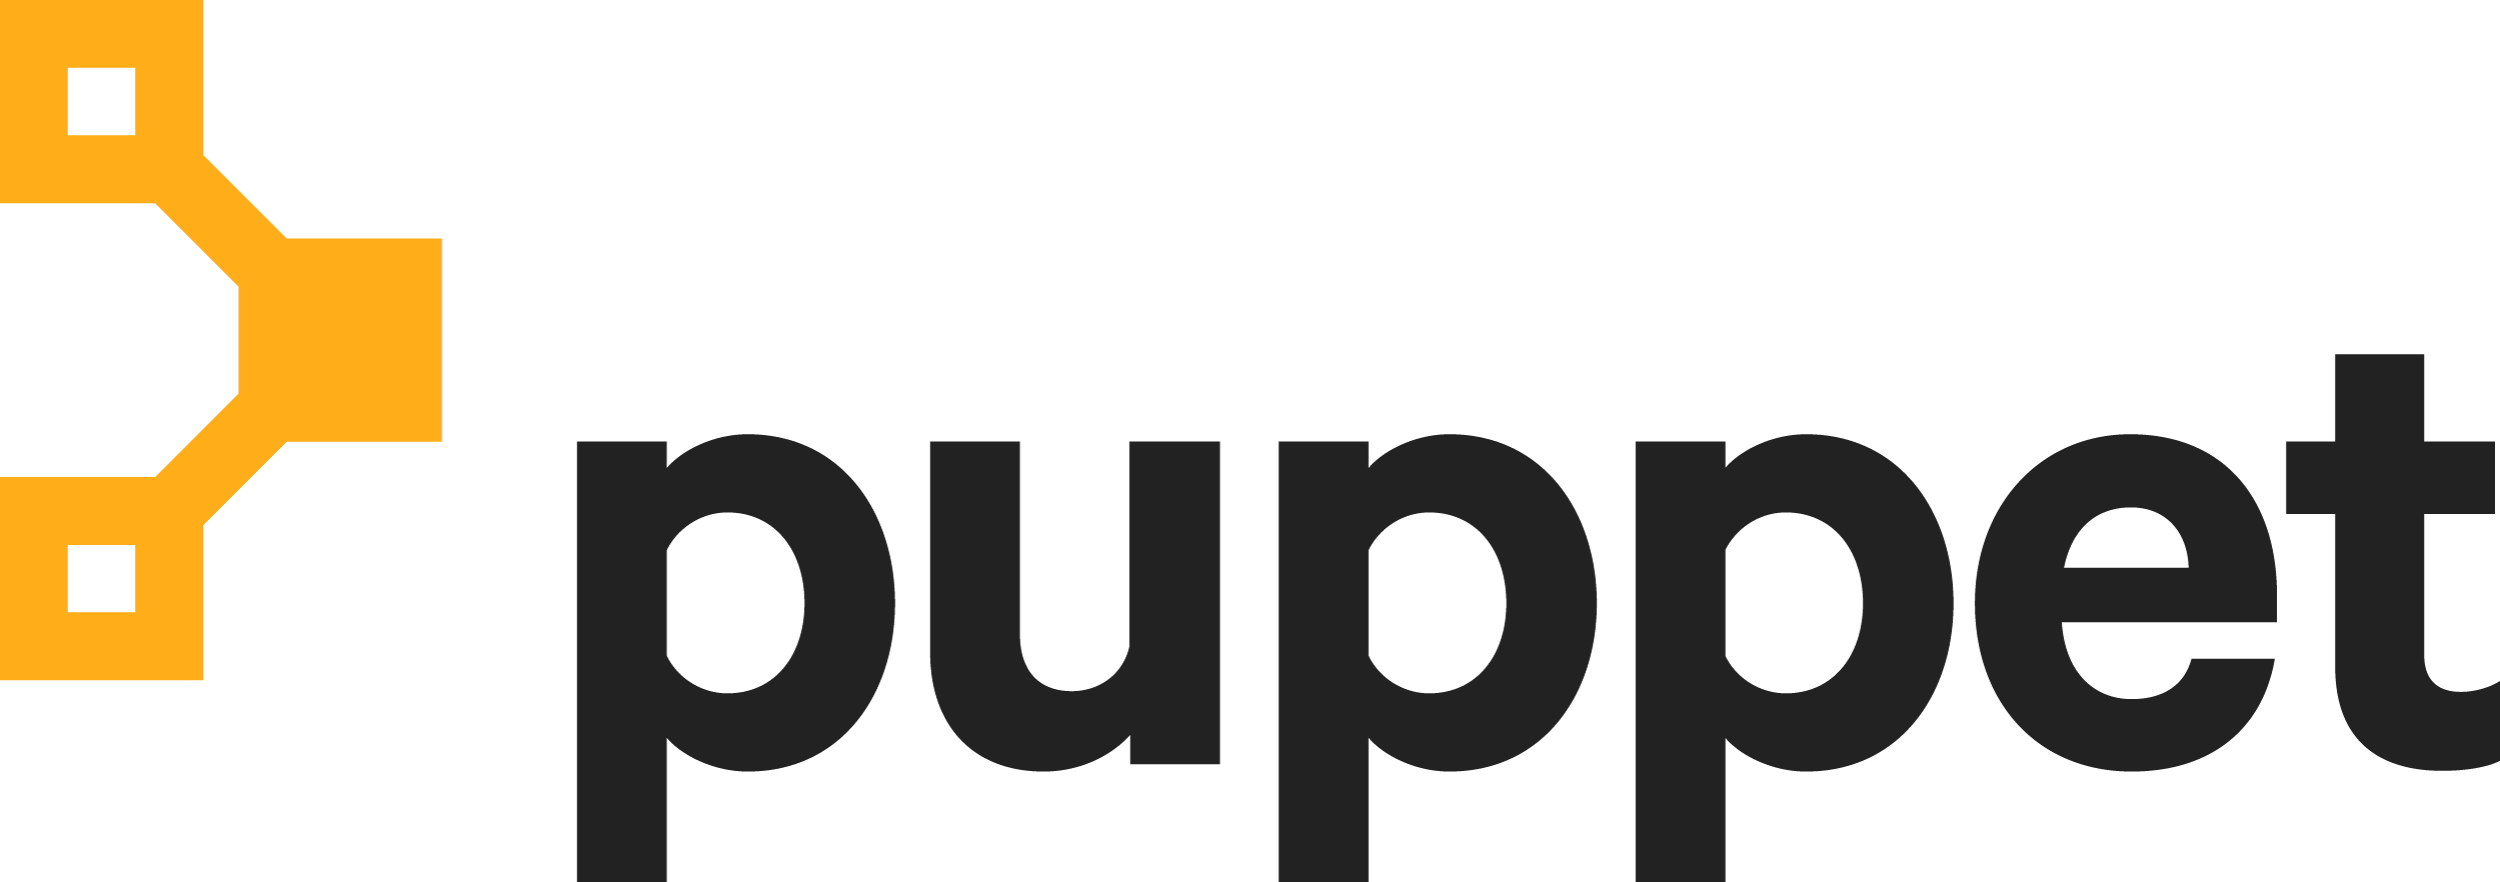 Puppet Enterprise logo